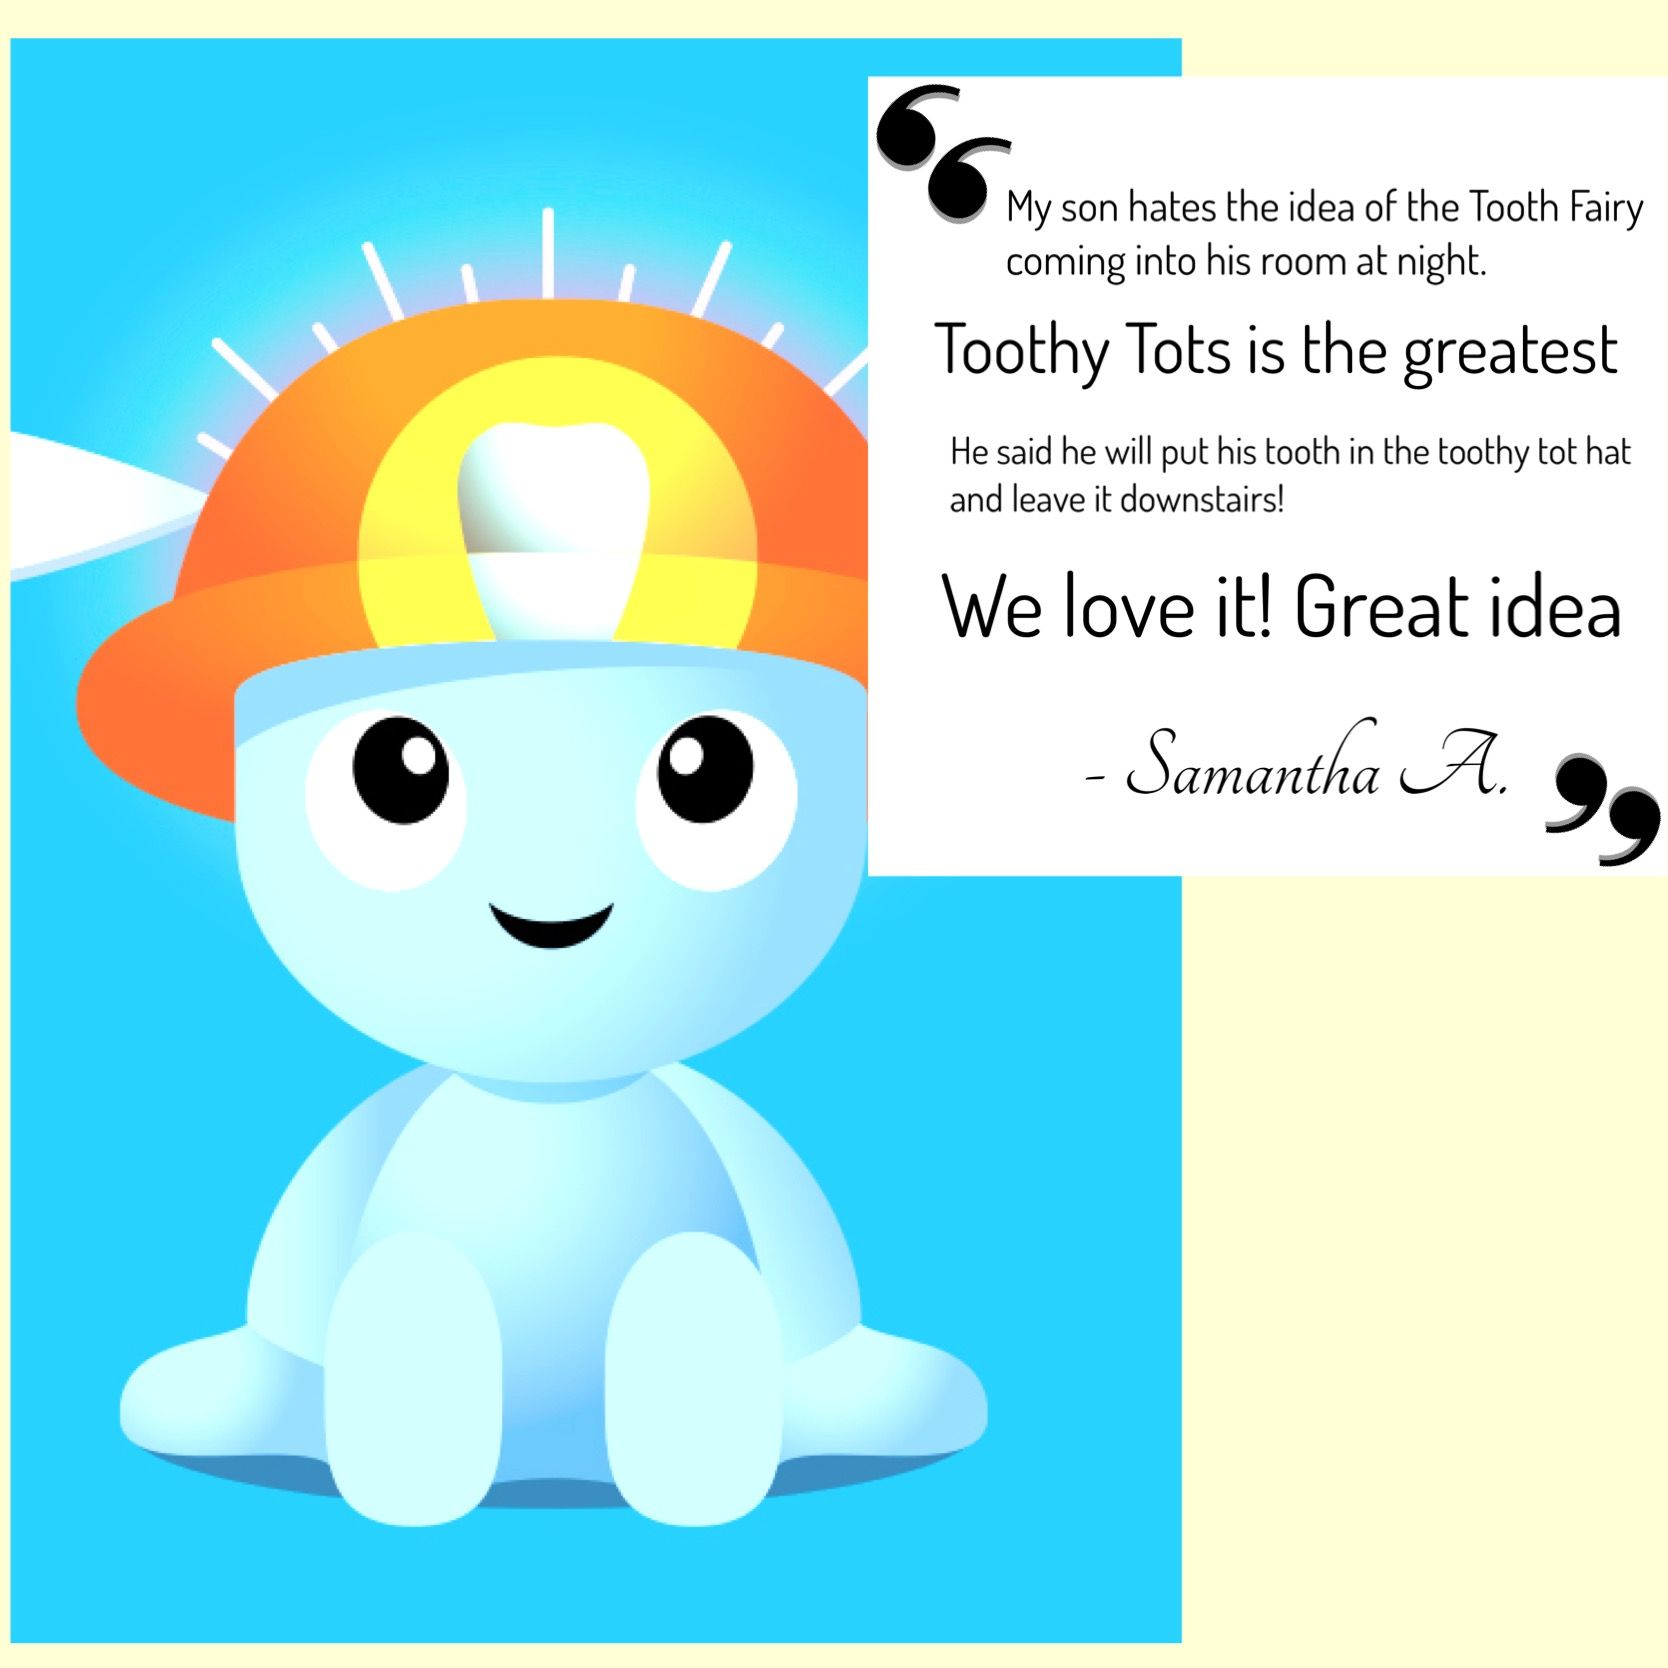 Thank you Samantha for your review!! #mytoothytots #customerreview #happycustomer  #childrensbooks #toothfairy #healthyteeth #healthygums #oralhygiene #kids #teaching #teeth #learning #dentist #brushyourteeth #lostatooth #toothholder #toothfairytime #toothfairyiscomingtonight #oralhealth #tooth #cleanteeth #healthysmile #happyteeth #nationaldentalassociation